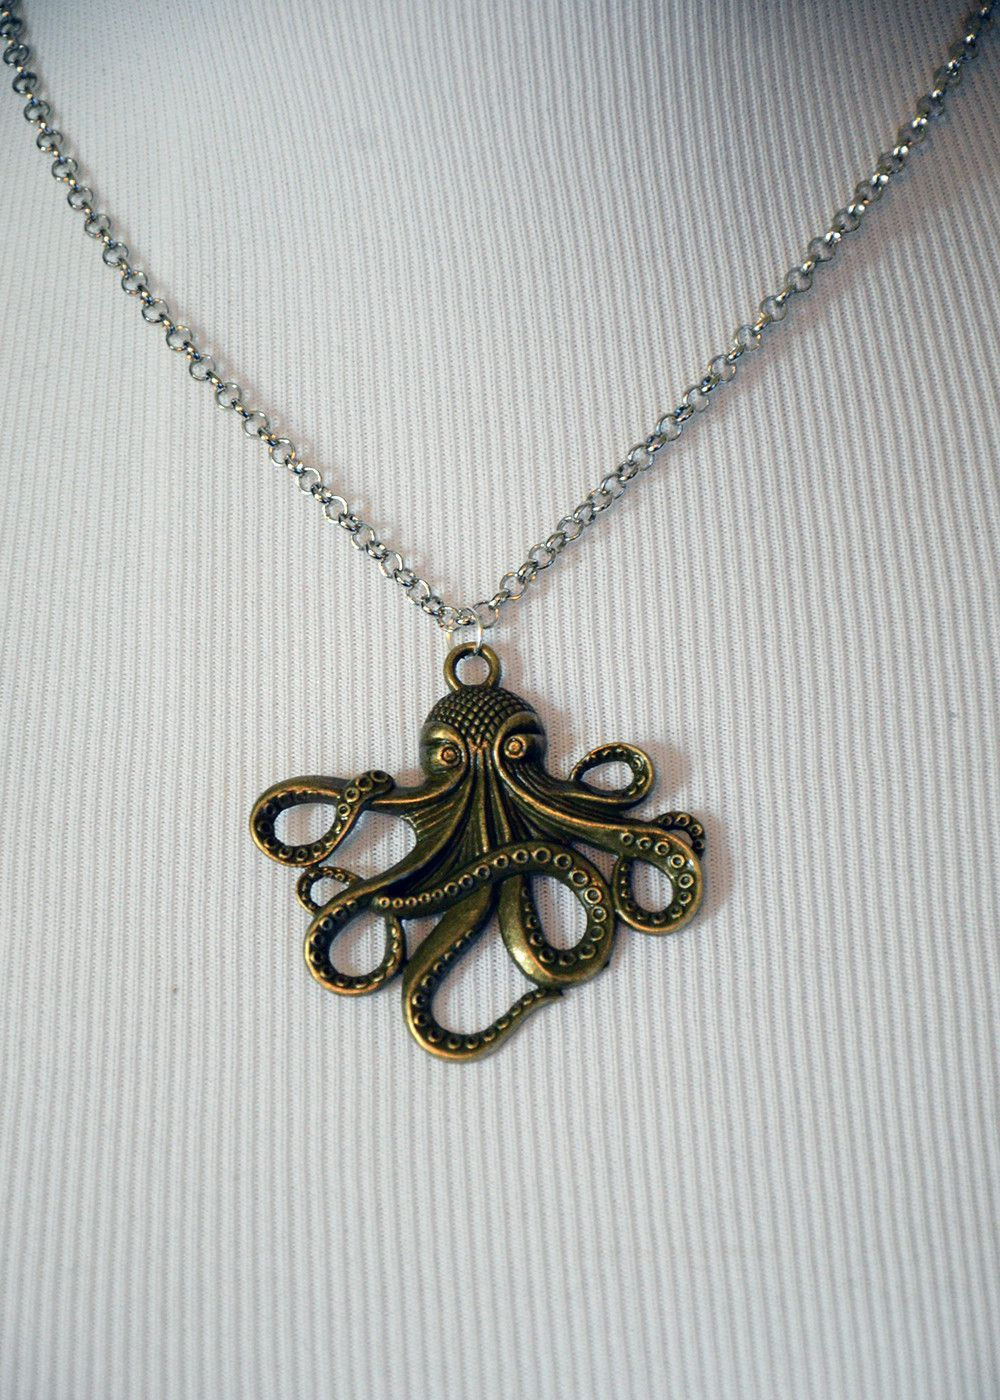 Octopus bronze pendant necklace